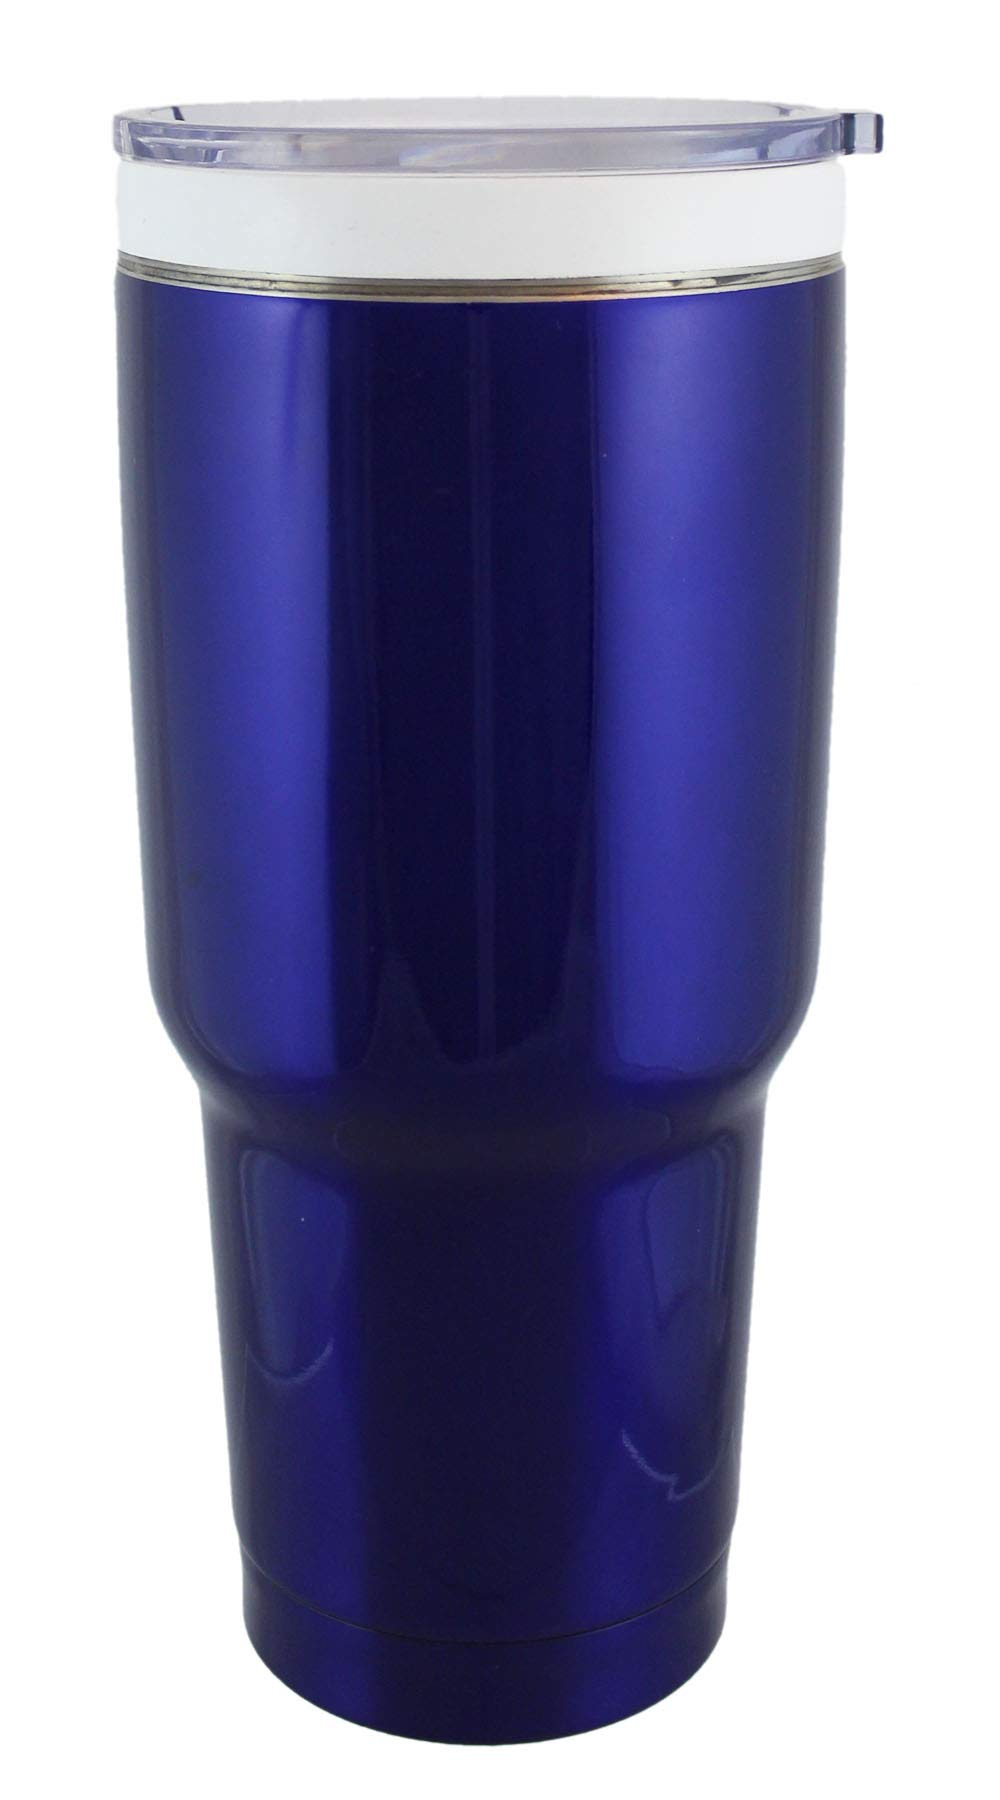 CeramiSteel 32 ounce Travel Mug with Lid, Ceramic Coated Stainless Steel Tumbler, Double Walled Vacuum Insulated, BPA Free, Blue Paint Finish